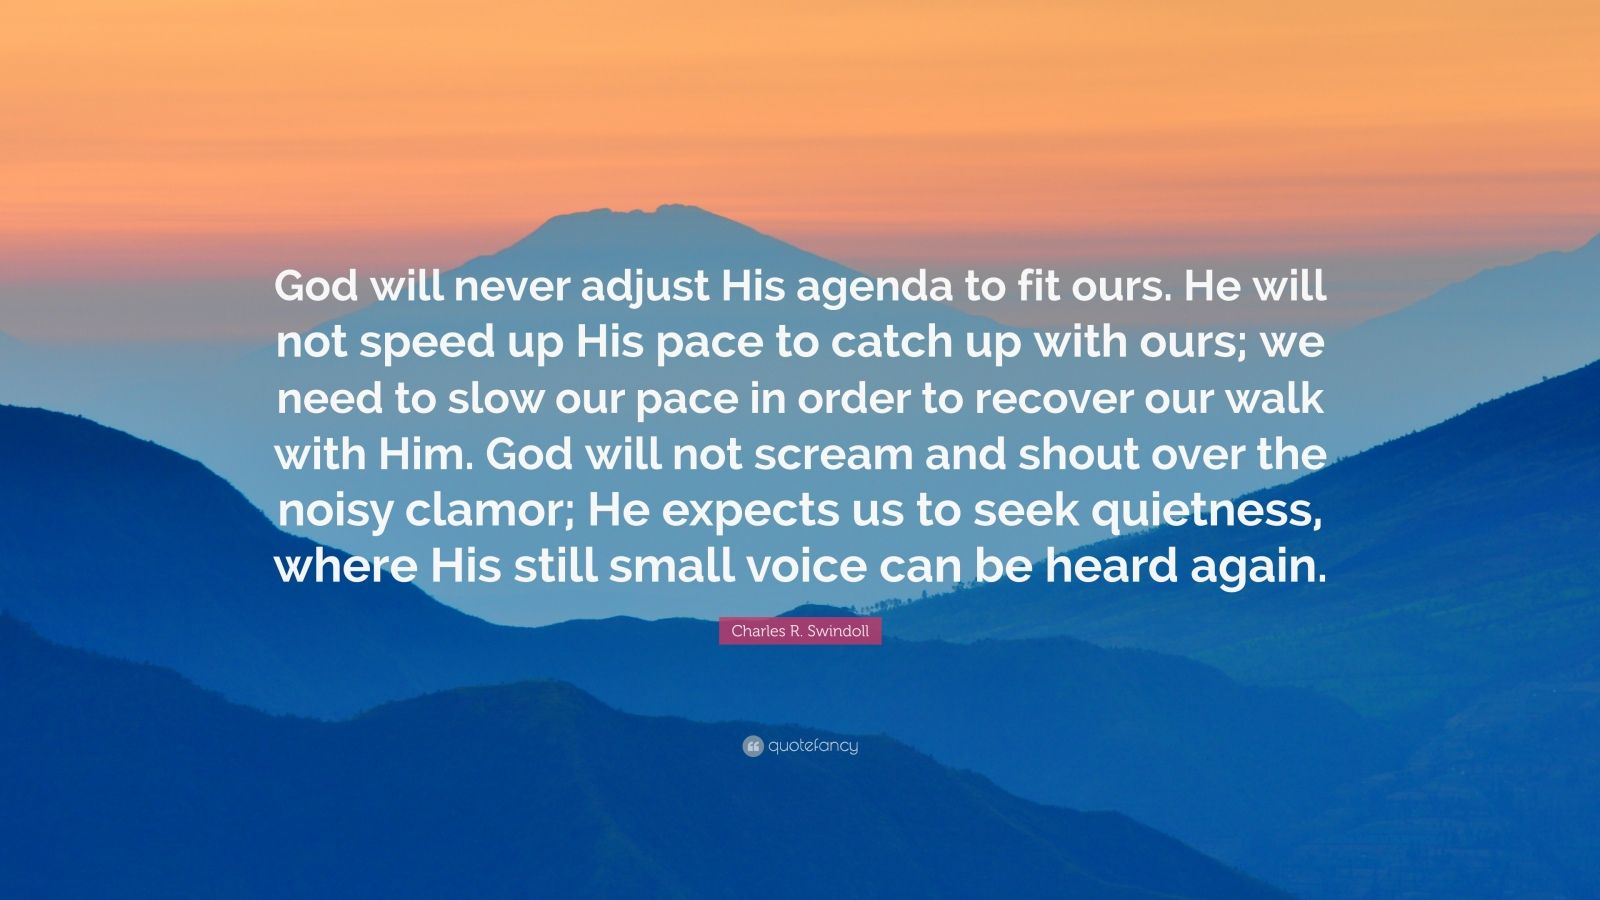 "Charles R. Swindoll Quote: ""God will never adjust His agenda to fit ours. He will not speed up His pace to catch up with ours; we need to slow our pace in order to recover our walk with Him. God will not scream and shout over the noisy clamor; He expects us to seek quietness, where His still small voice can be heard again."""